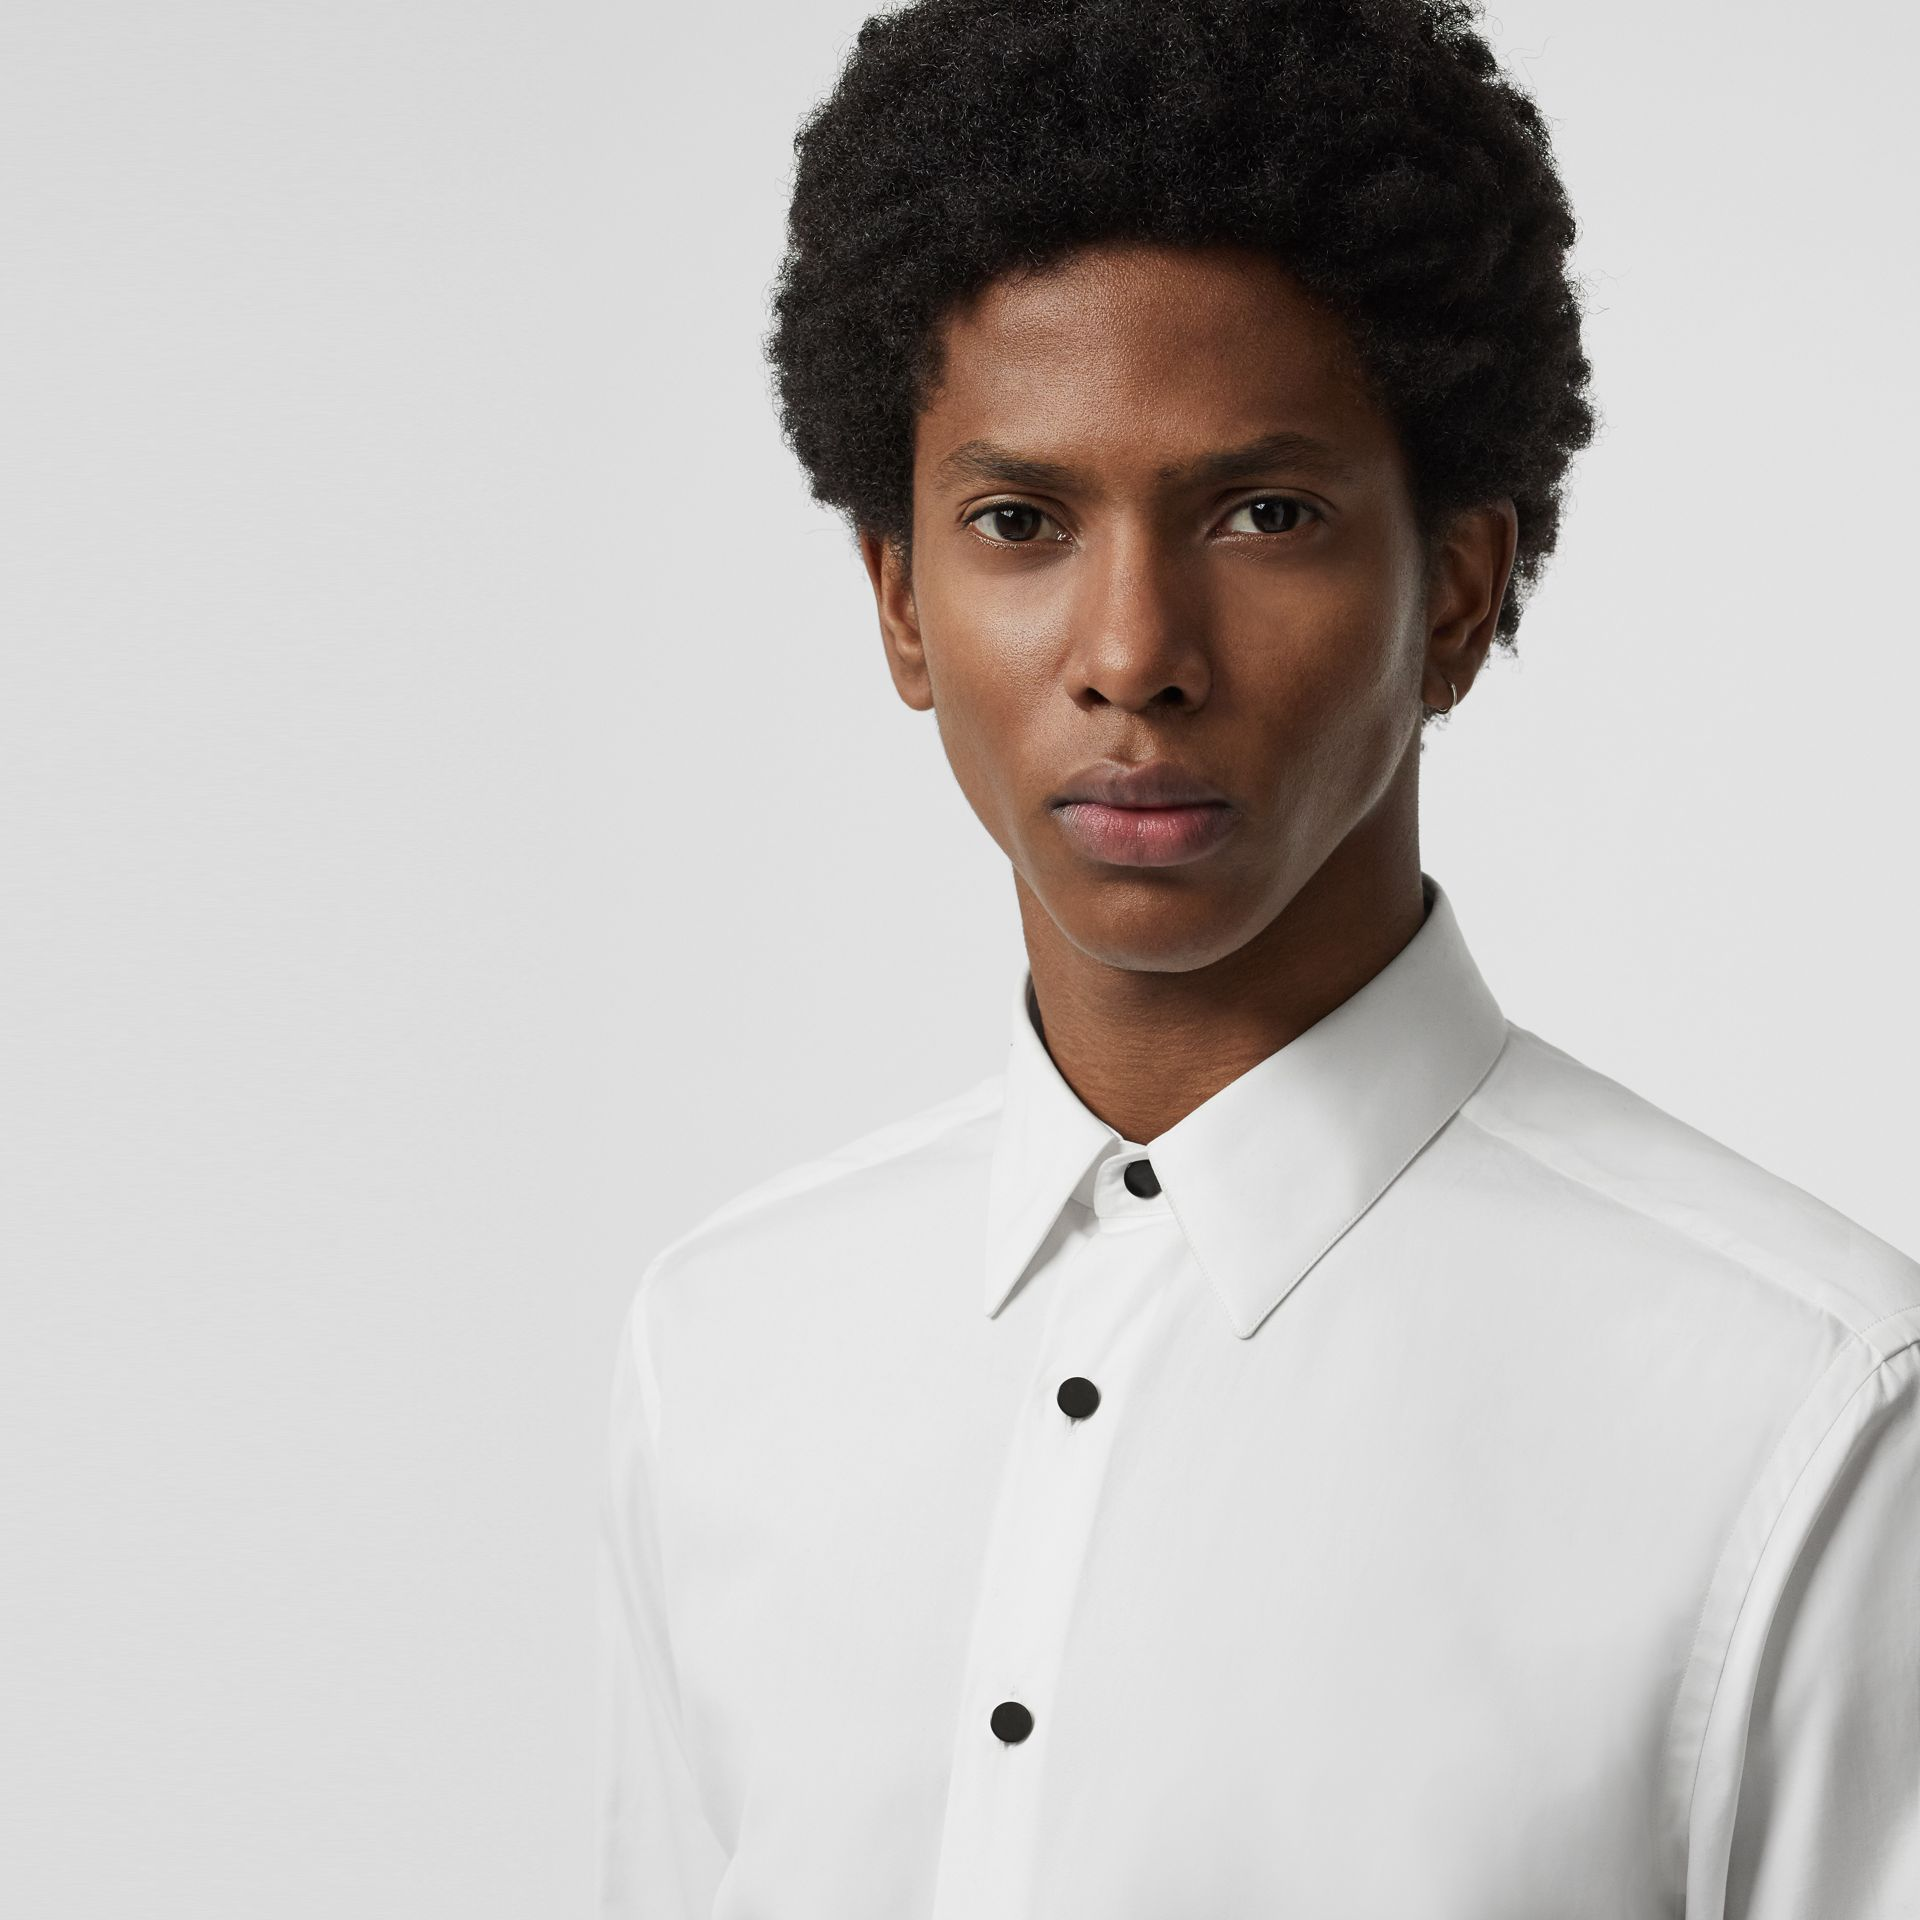 Classic Fit Cotton Poplin Dress Shirt in White - Men | Burberry Singapore - gallery image 1